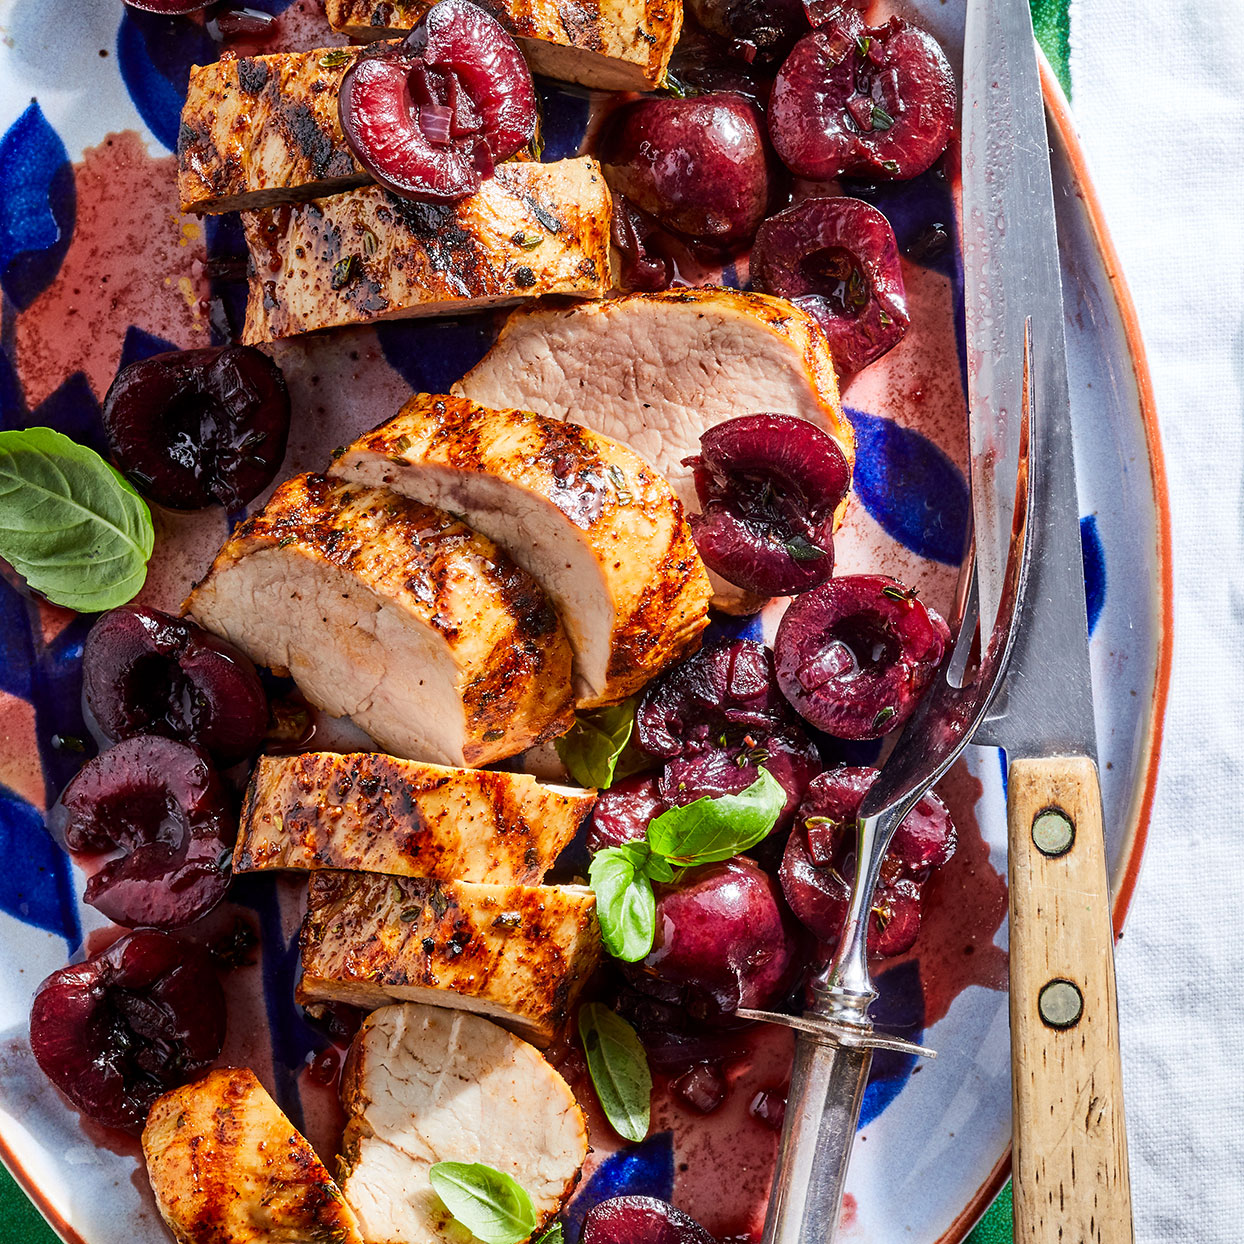 Grilled Pork Tenderloin with Cherries